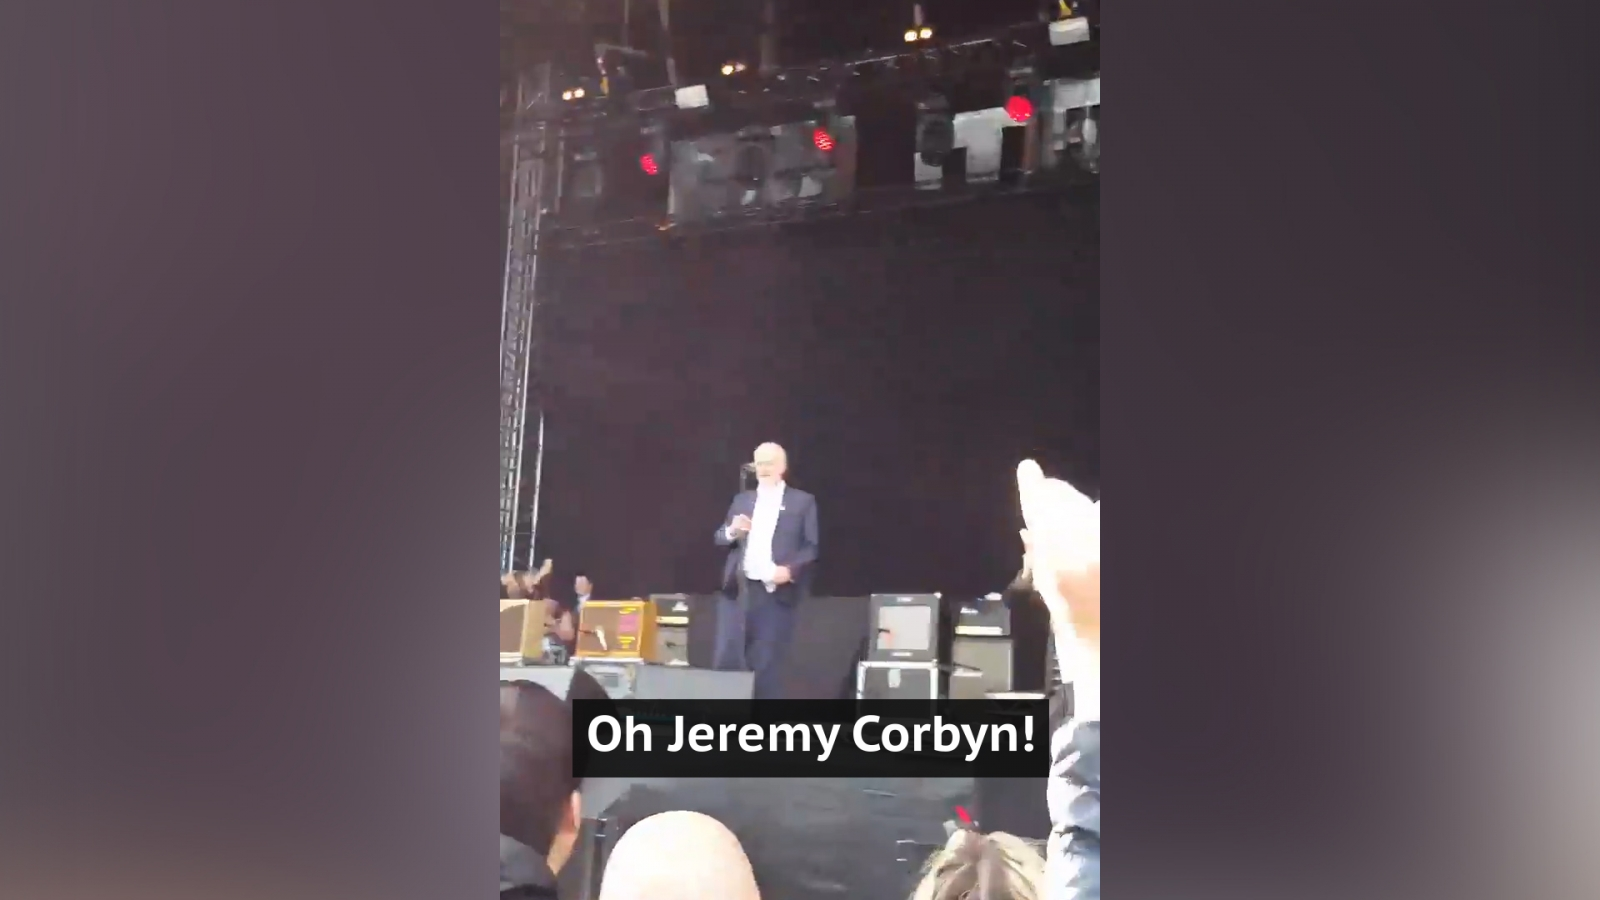 jeremy-corbyns-surprise-concert-appearance-whips-up-the-crowd-at-libertines-gig